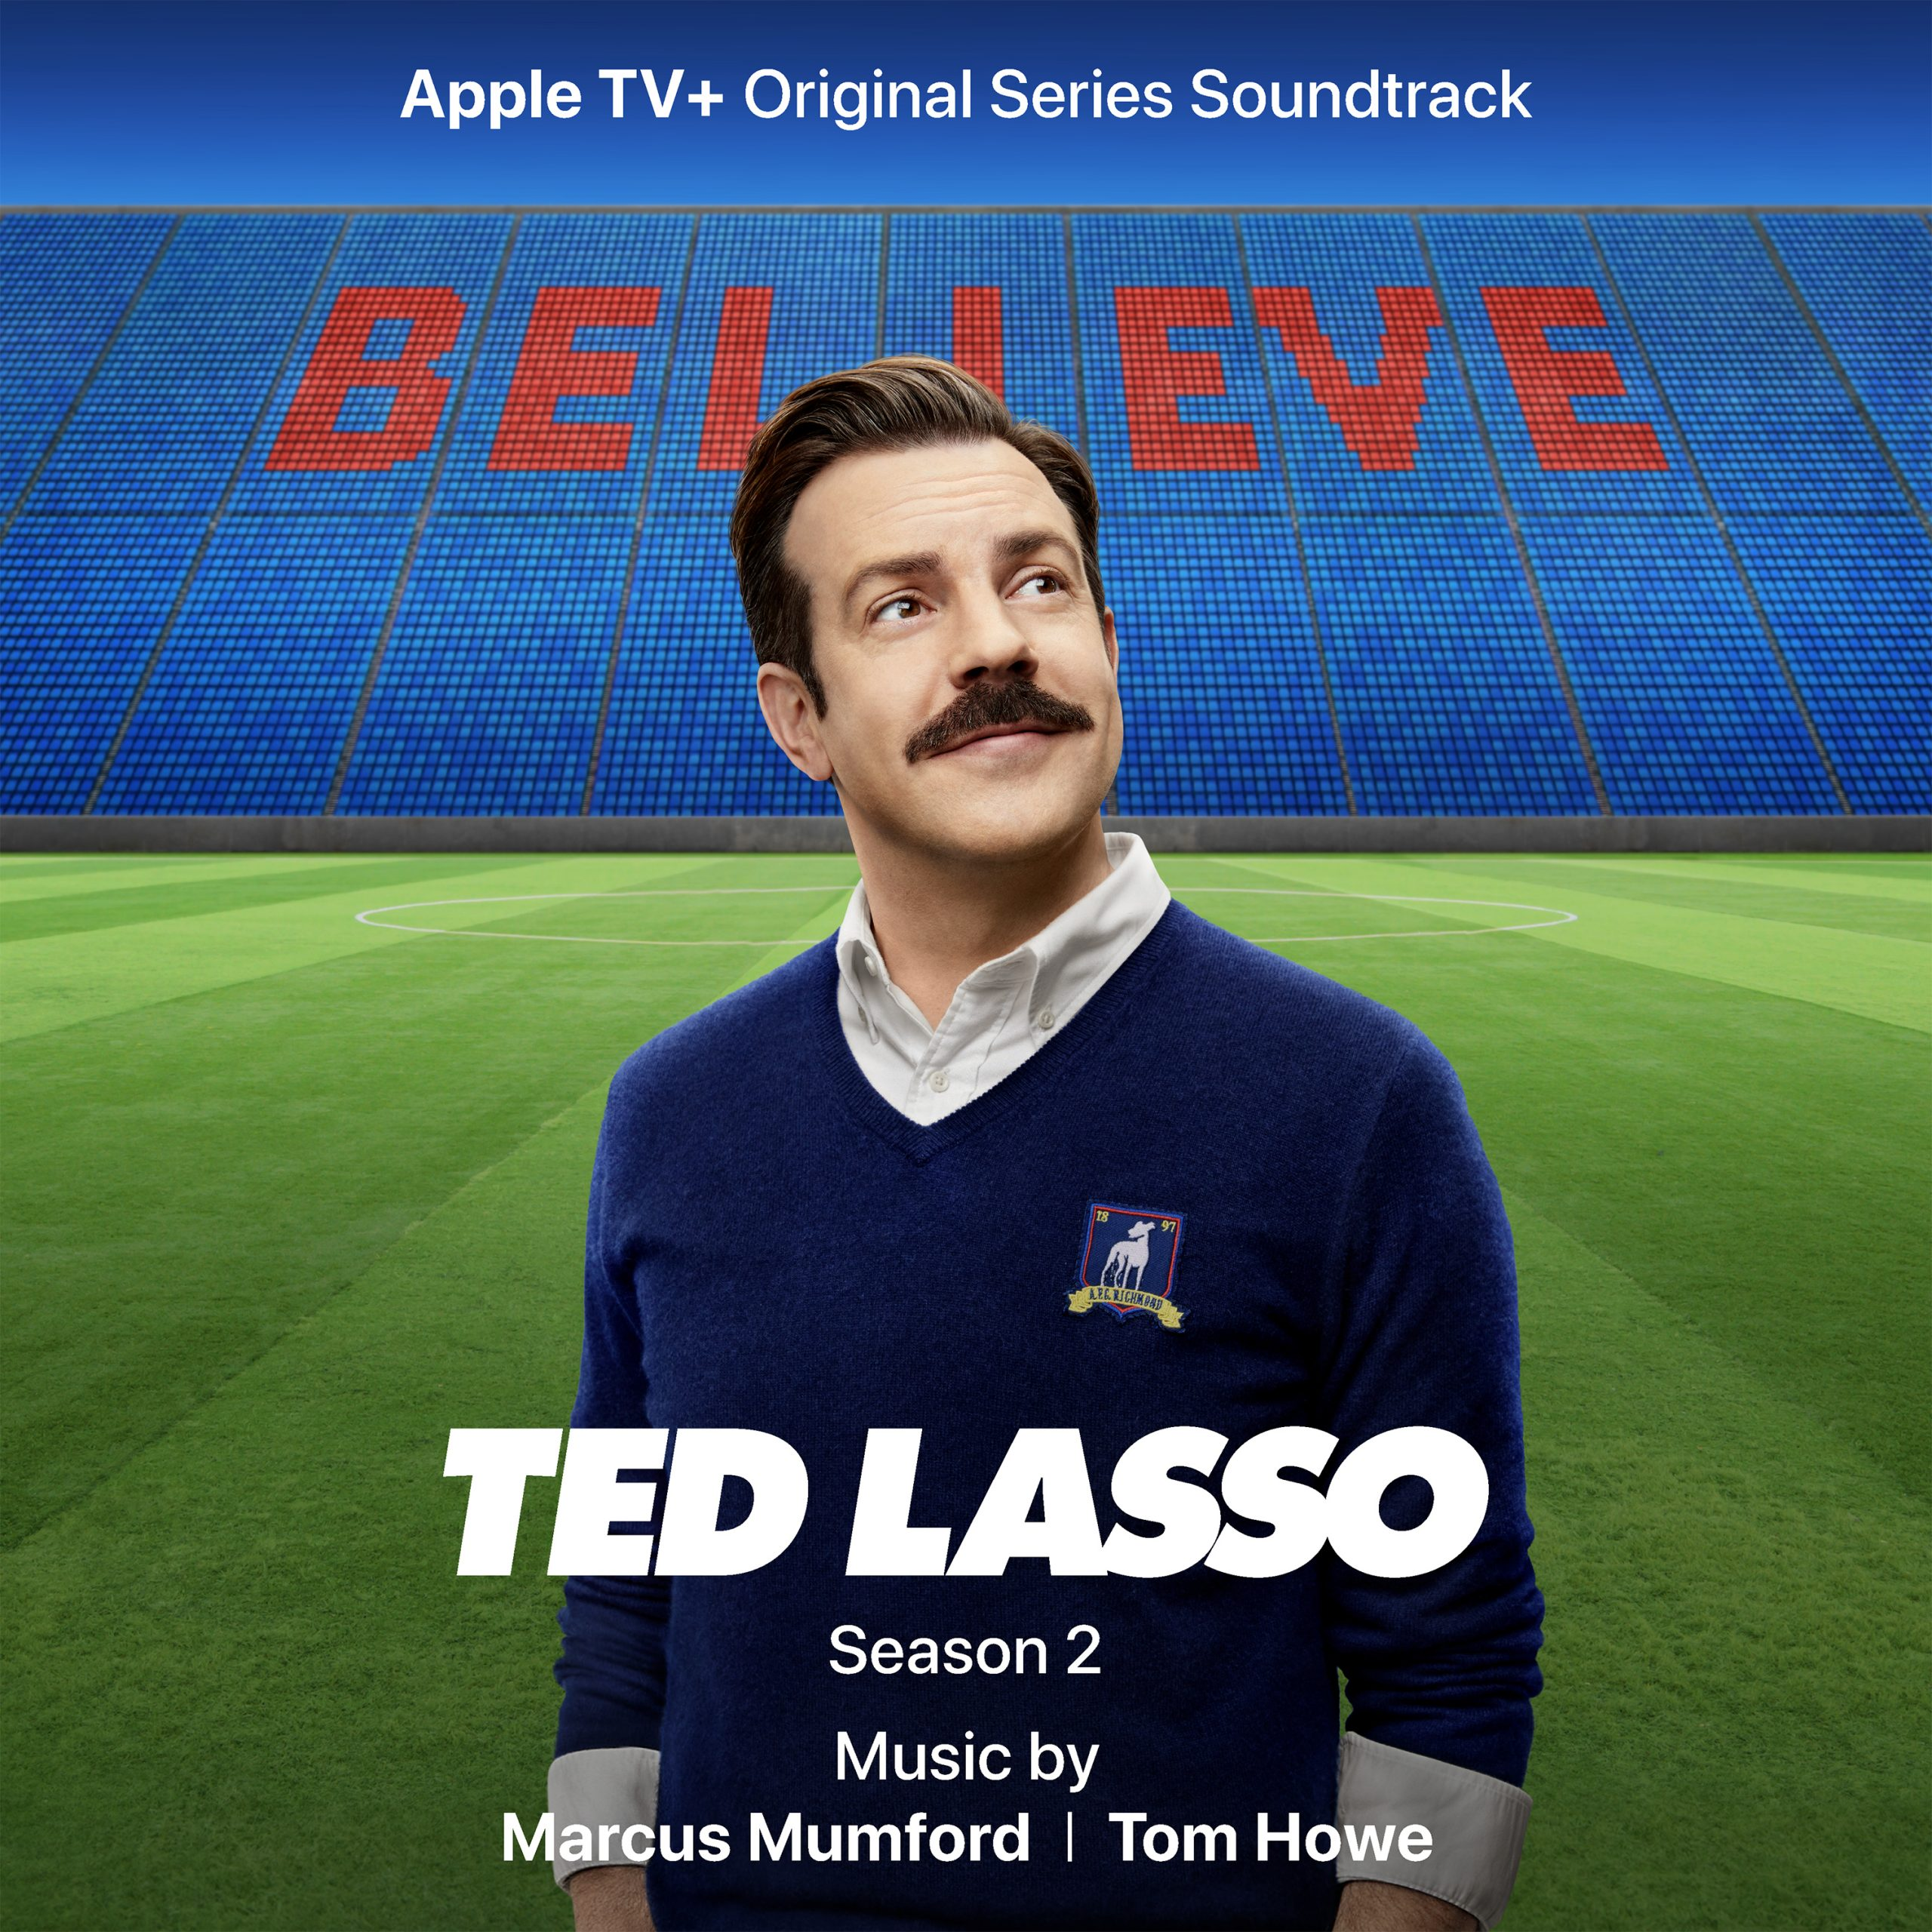 Jeff Tweedy Covered The Ted Lasso Theme